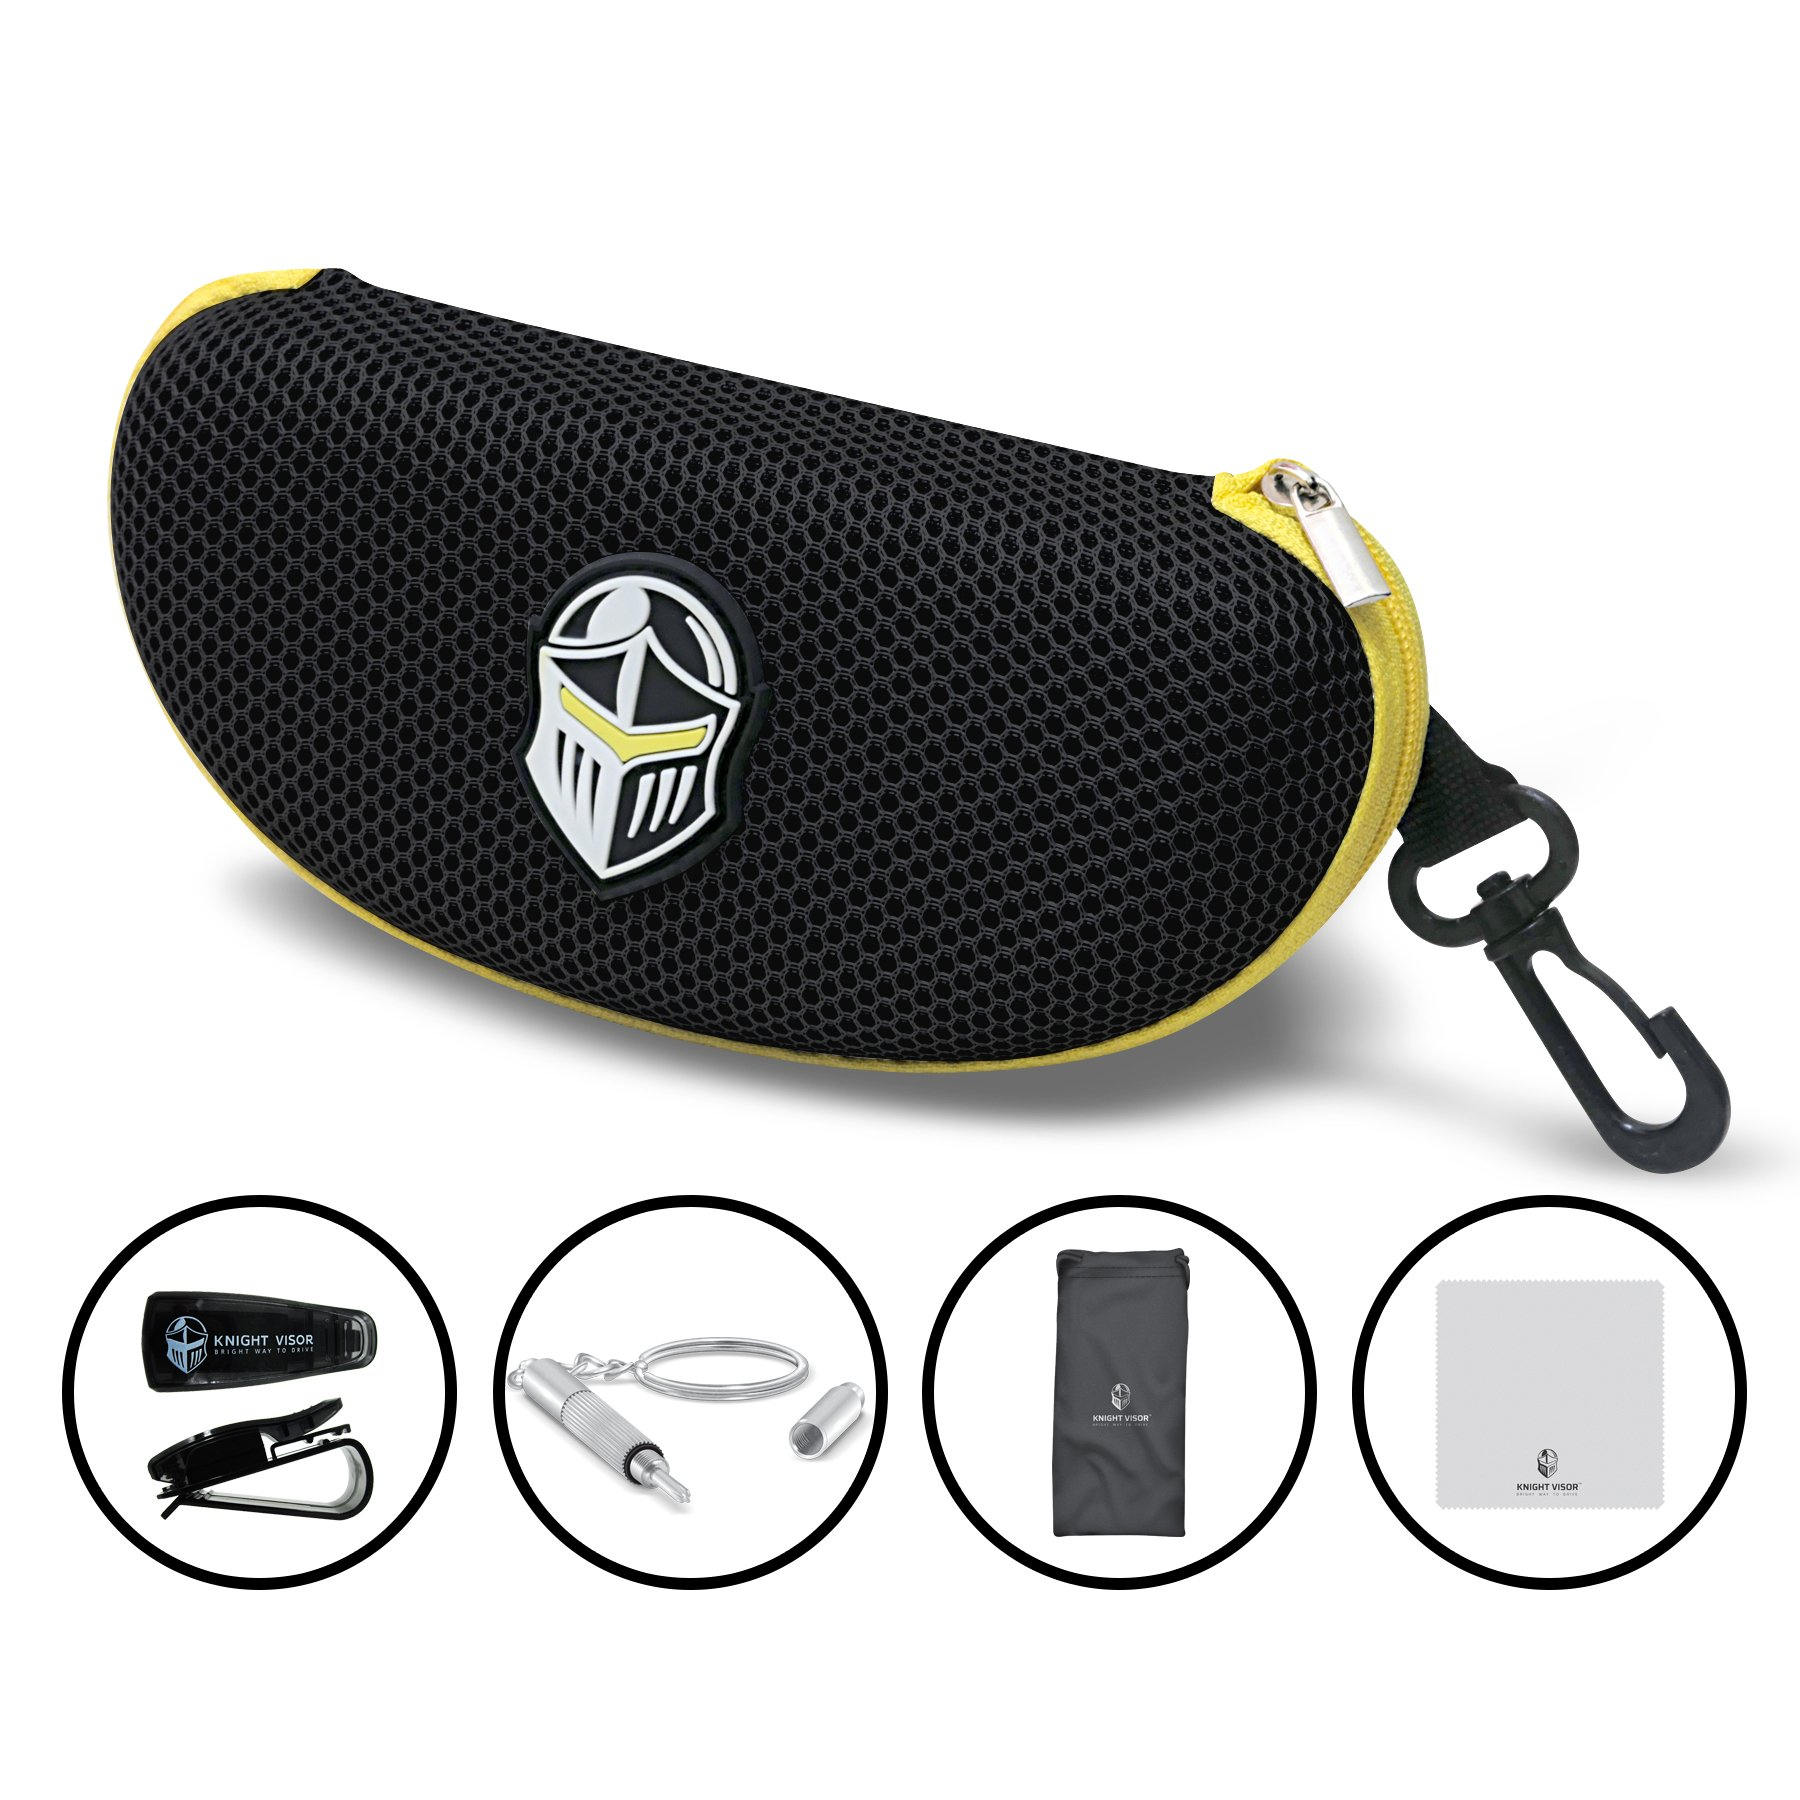 BLUPOND Semi Hard EVA Large Glasses Case with Hanging Hook 5 IN 1 Set for Sports Sunglasses (BlackYellow) by BLUPOND